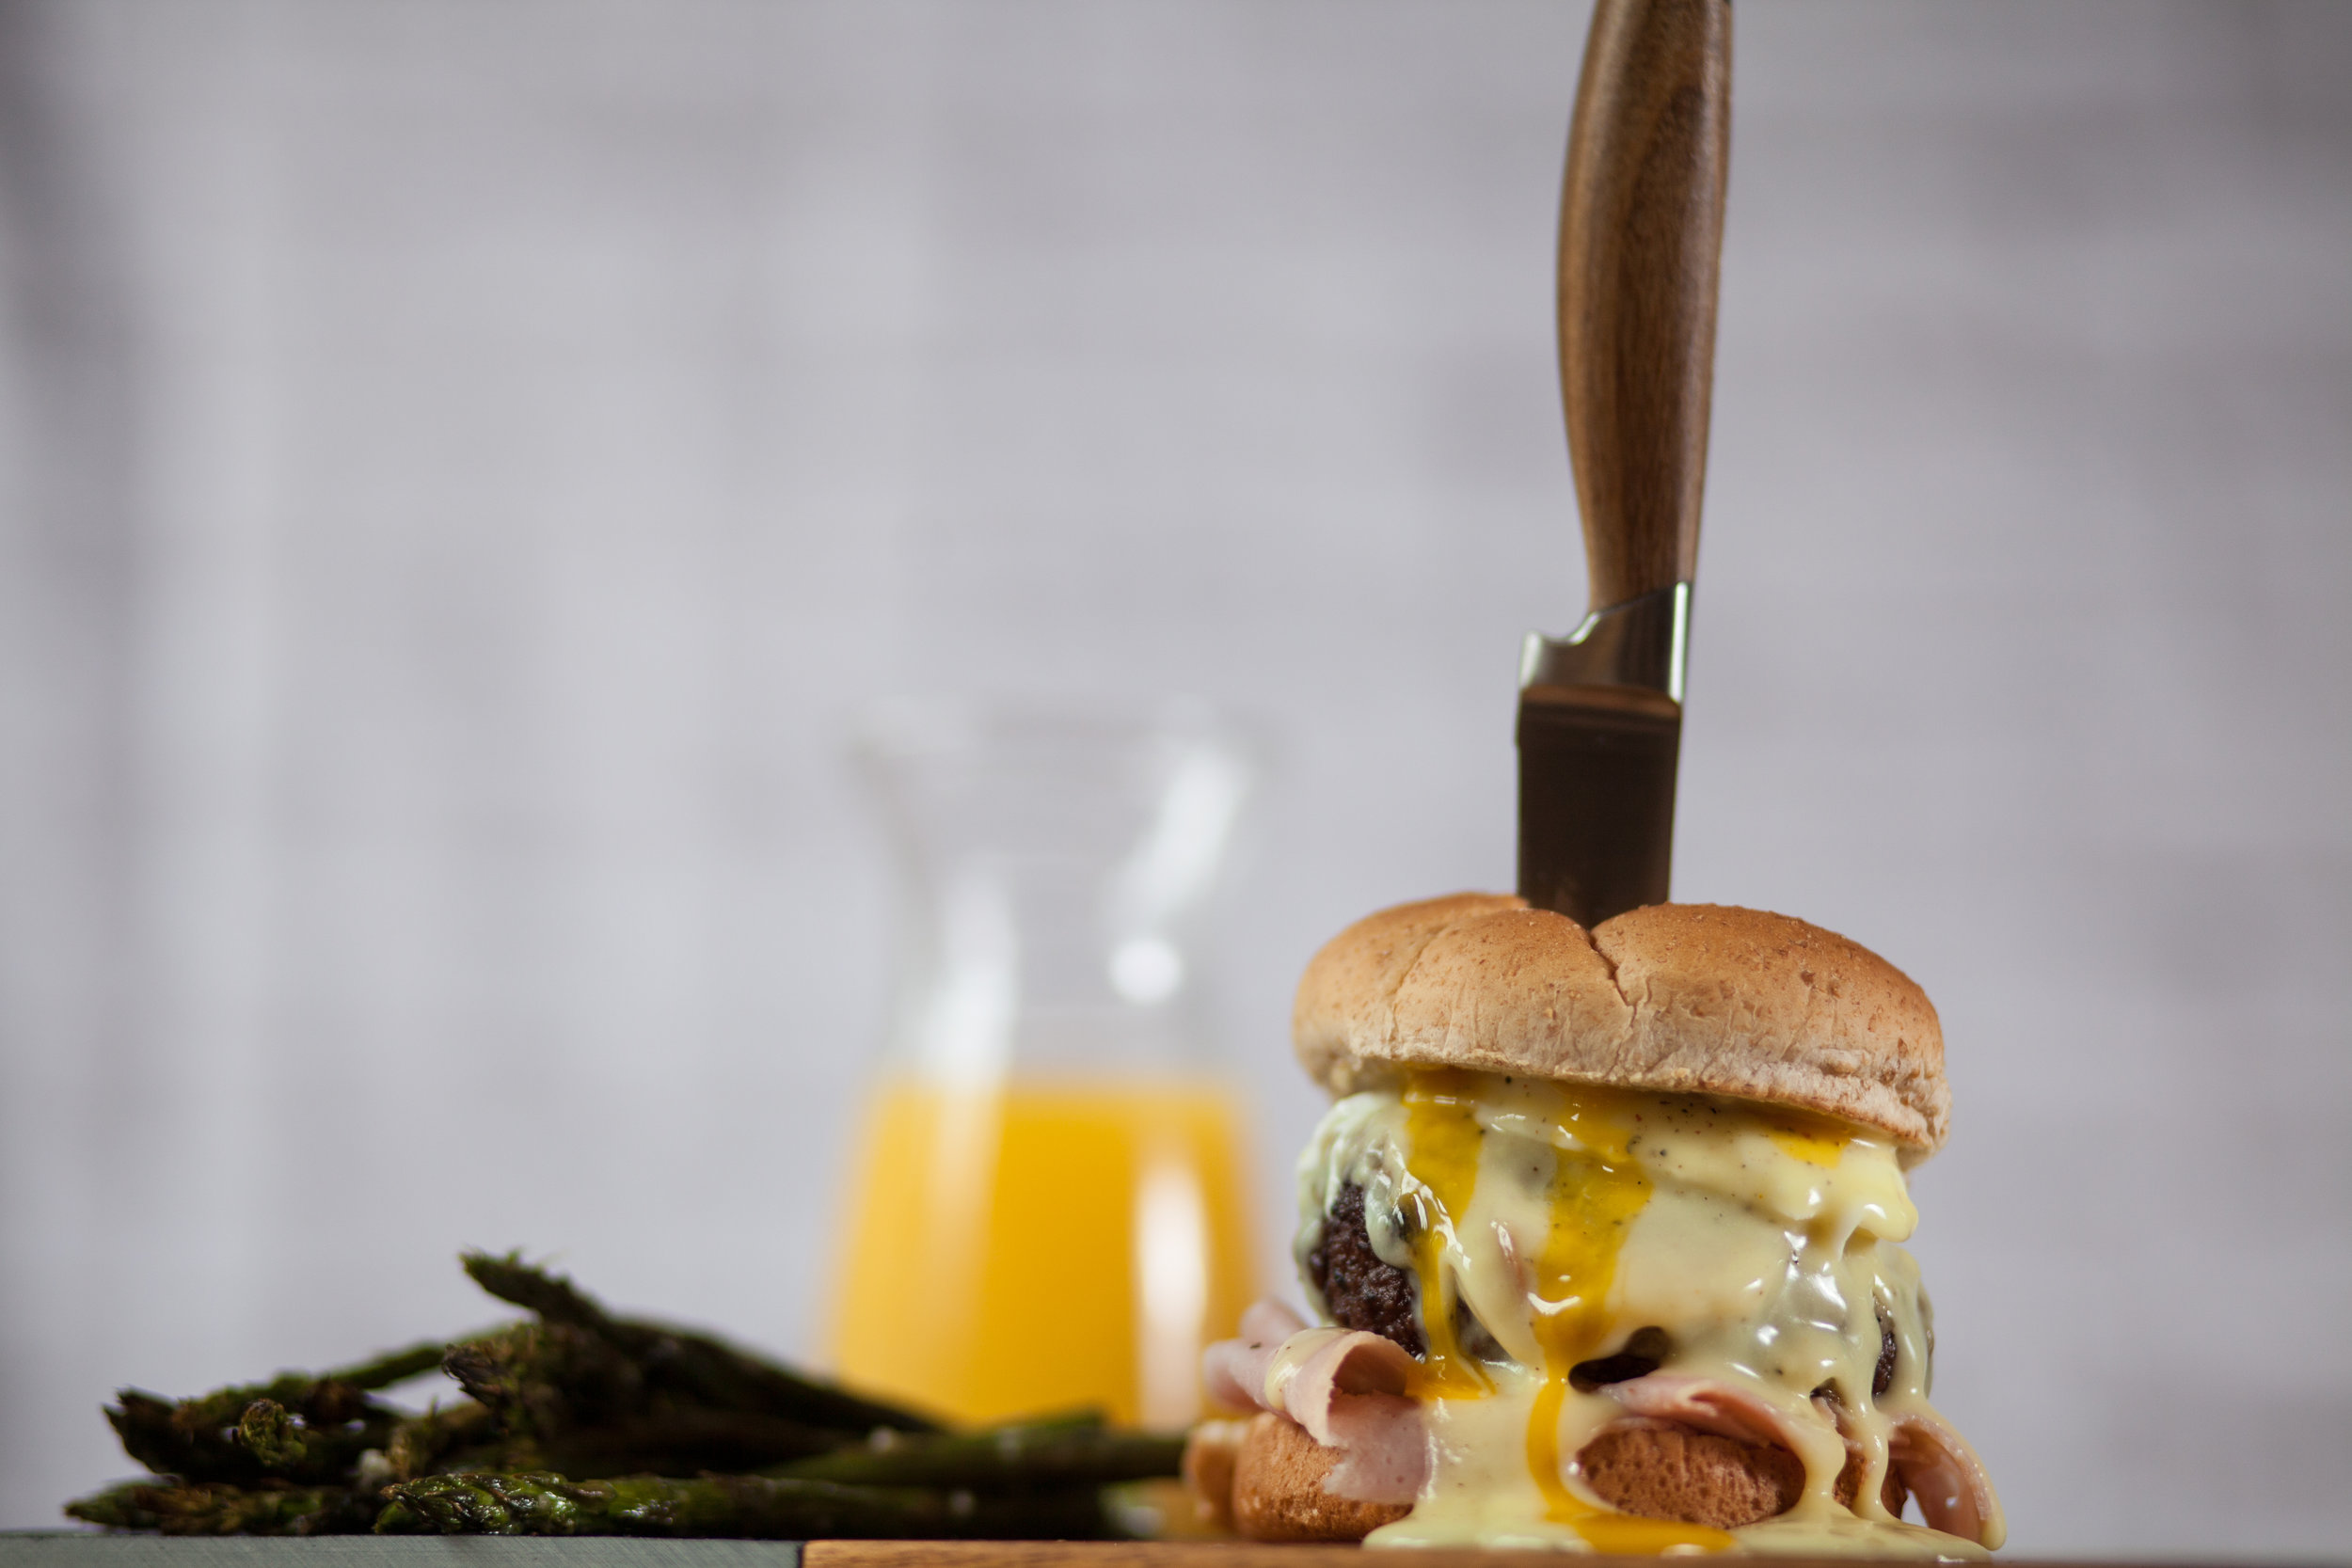 Benedict Burgers - You may think that a Benedict burger isn't a great name considering it's Memorial Day, but once you get a taste of the Swiss cheese and creamy Hollandaise sauce you'll forget all about that.